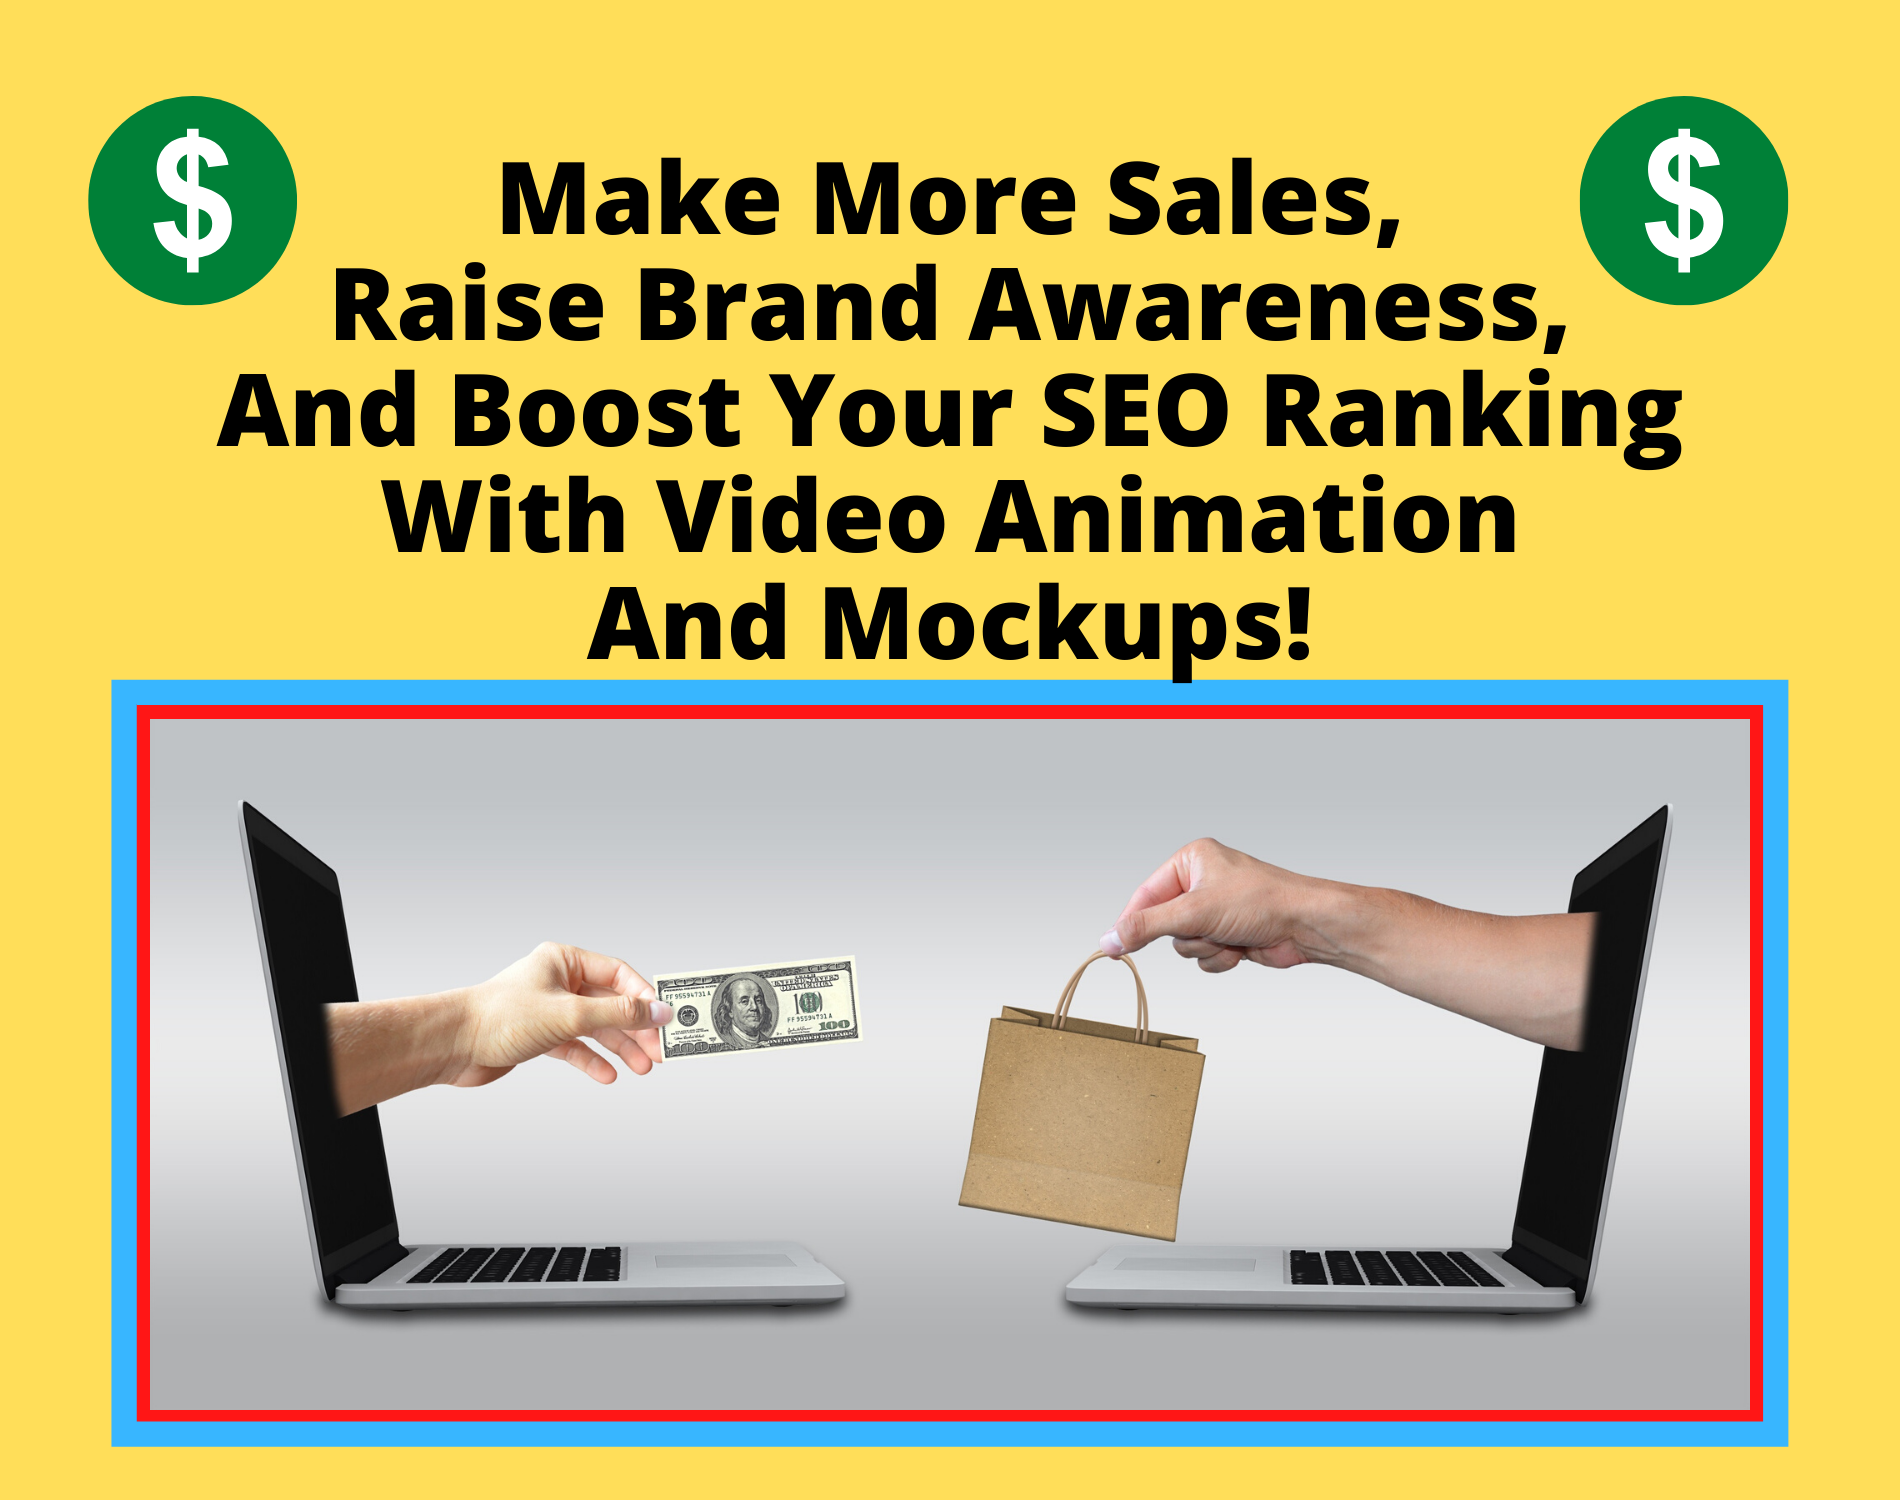 Make More Sales,  Raise Brand Awareness,  And Boost Your SEO Ranking with Video Animation And Mockups